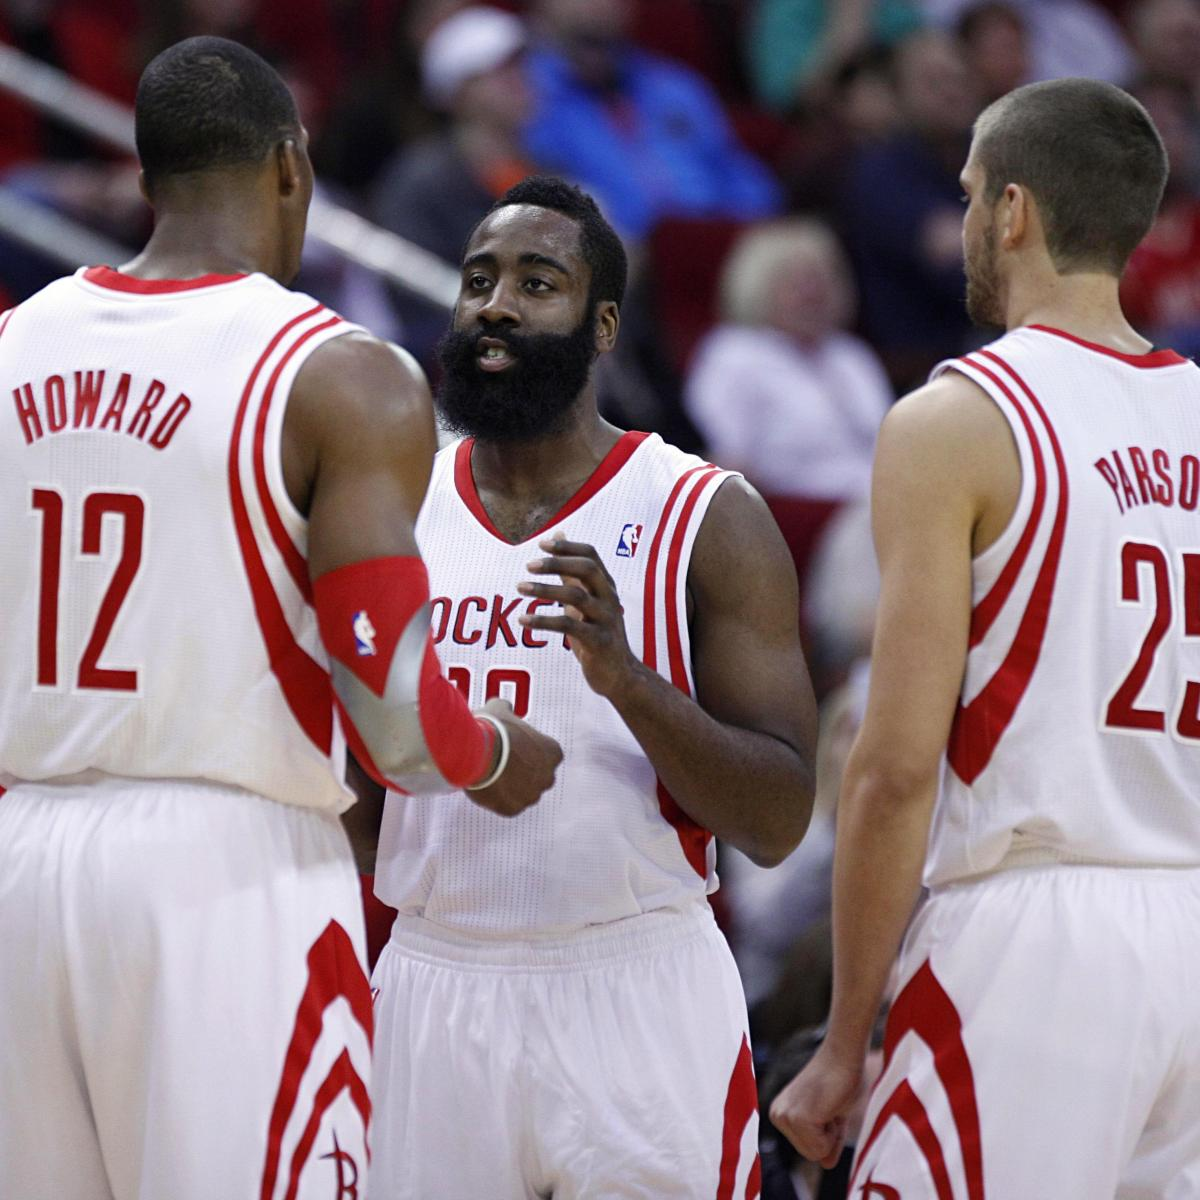 Houston Rockets Zach Lowe: Houston Rockets Don't Need Another Superstar To Take The